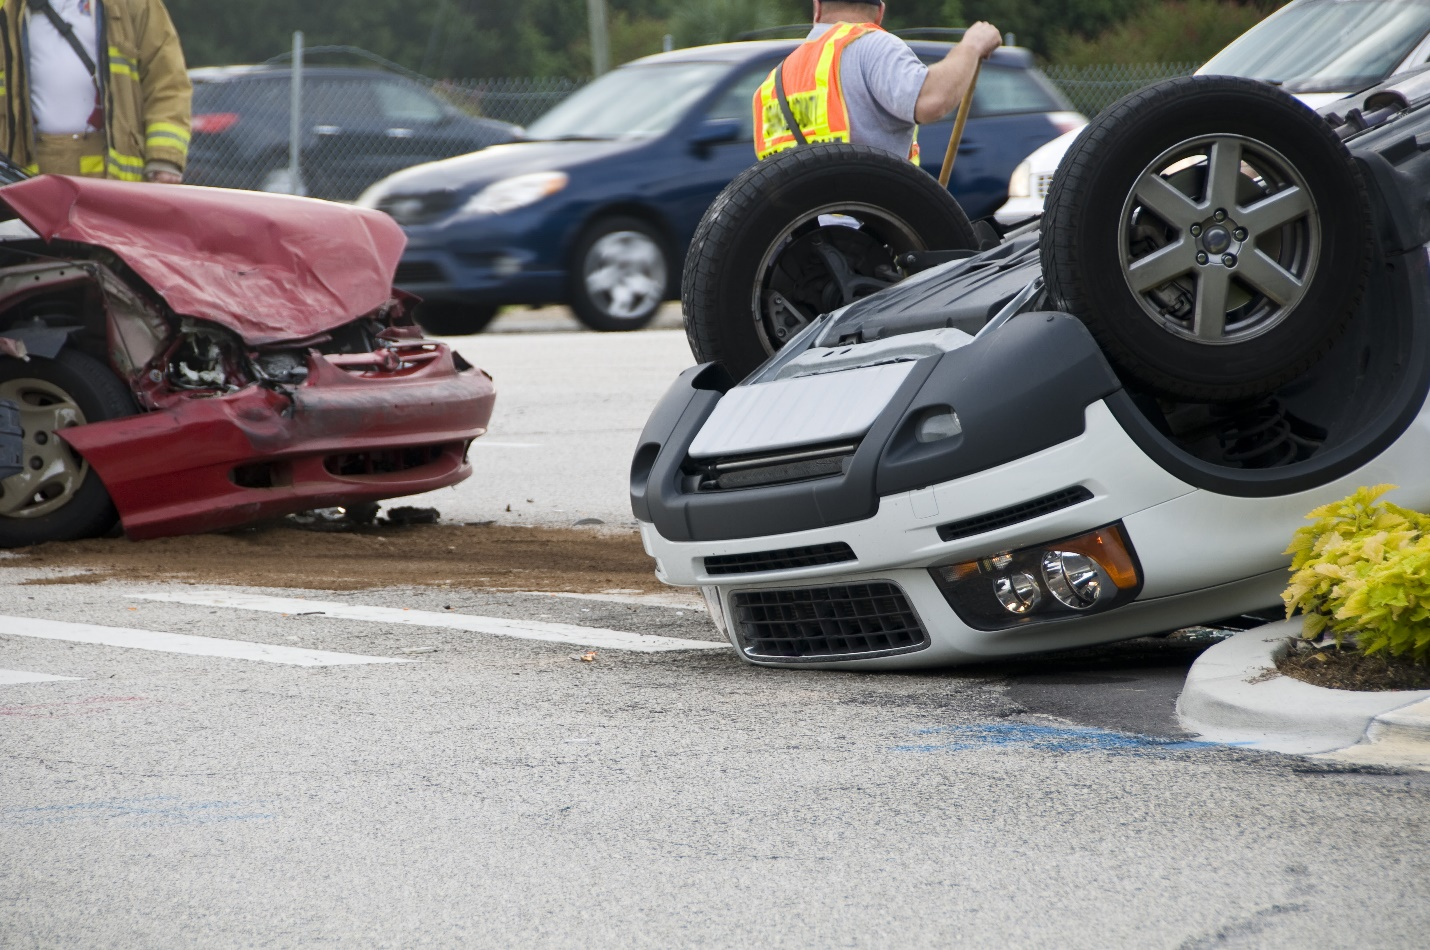 fayetteville car accident attorney - The Most Common Types of Car Accidents in Arkansas